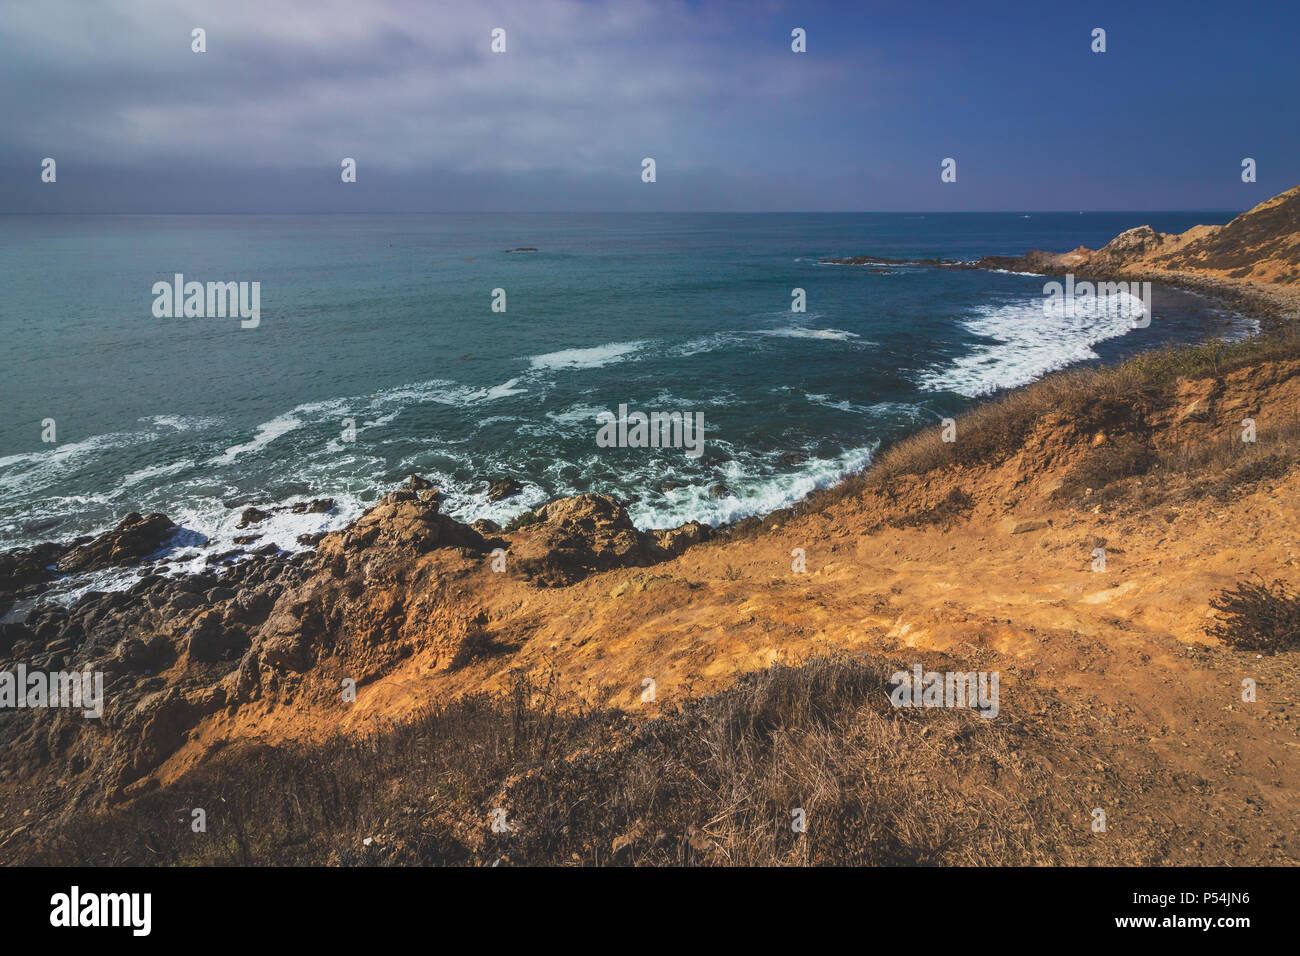 Beautiful waves crashing onto the rocky beach of Bluff Cove with Flat Rock Point rock formation in the background, Palos Verdes Estates, California - Stock Image